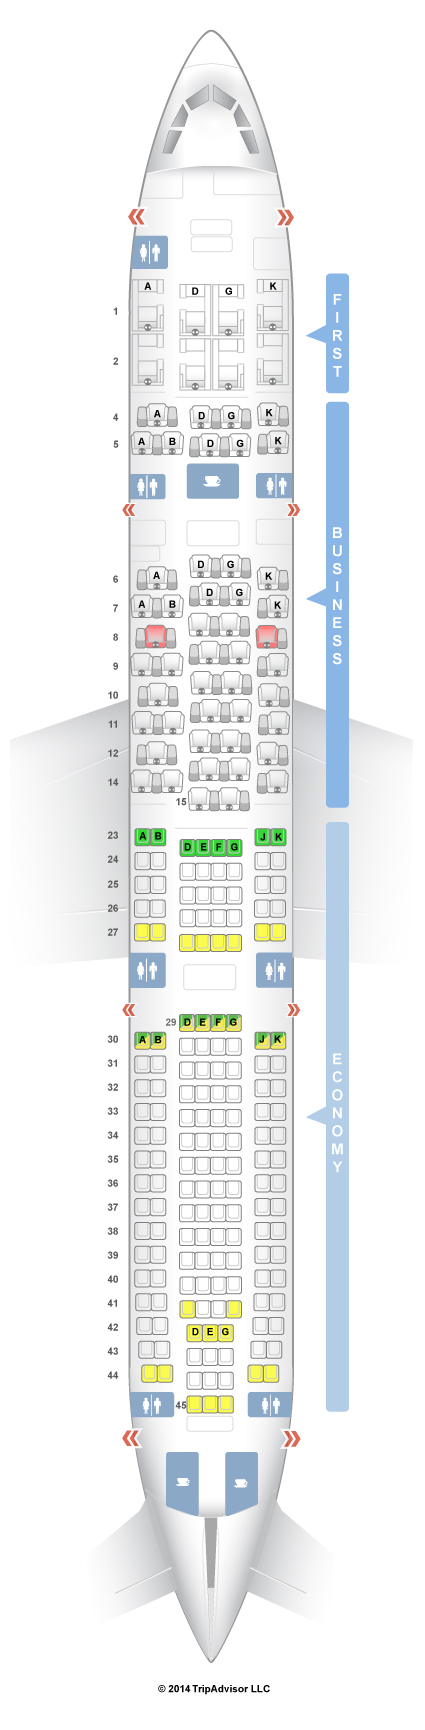 Swiss air seat assignment